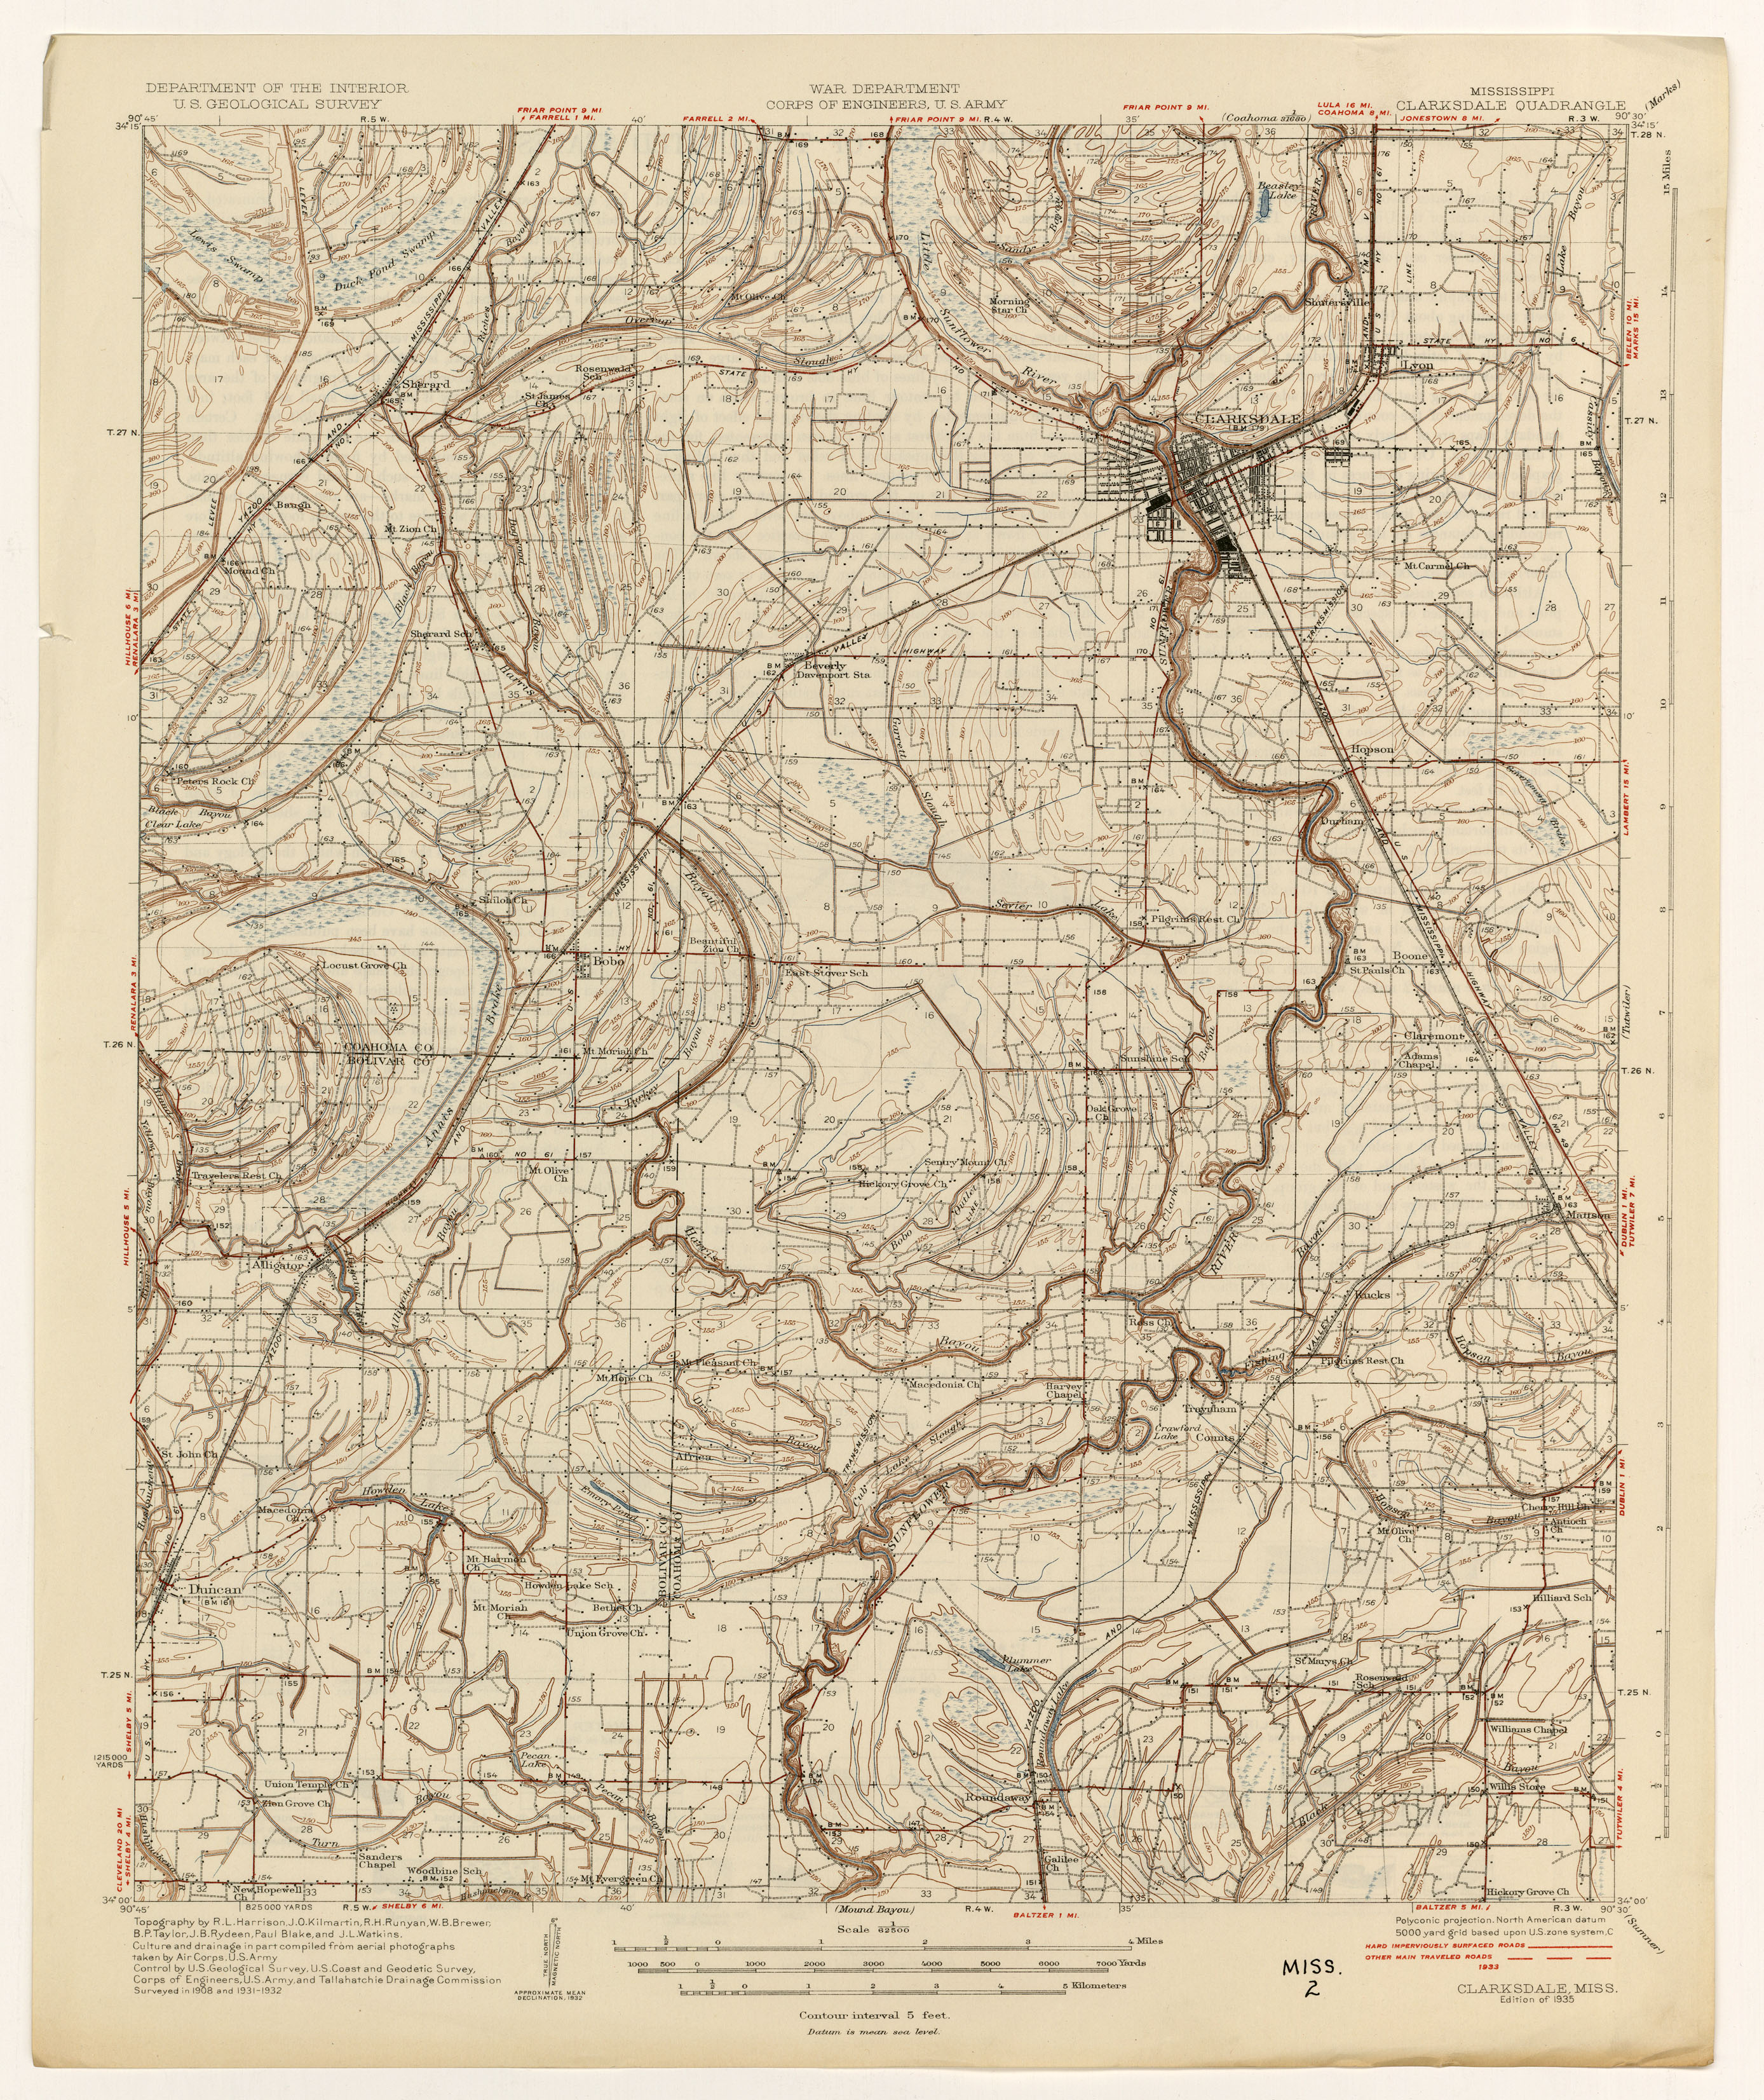 Mississippi Topographic Maps - Perry-Castañeda Map Collection - UT on map of ga, map of am, map of ar, map of alabama, county map ms, map jackson ms, map of mo, map of al, map of louisiana, map of ic, map of mississippi, map of ky, map of arkansas, map of vb, map of usa, map of ia, map of fl, map of la, map of ca, map of mn,